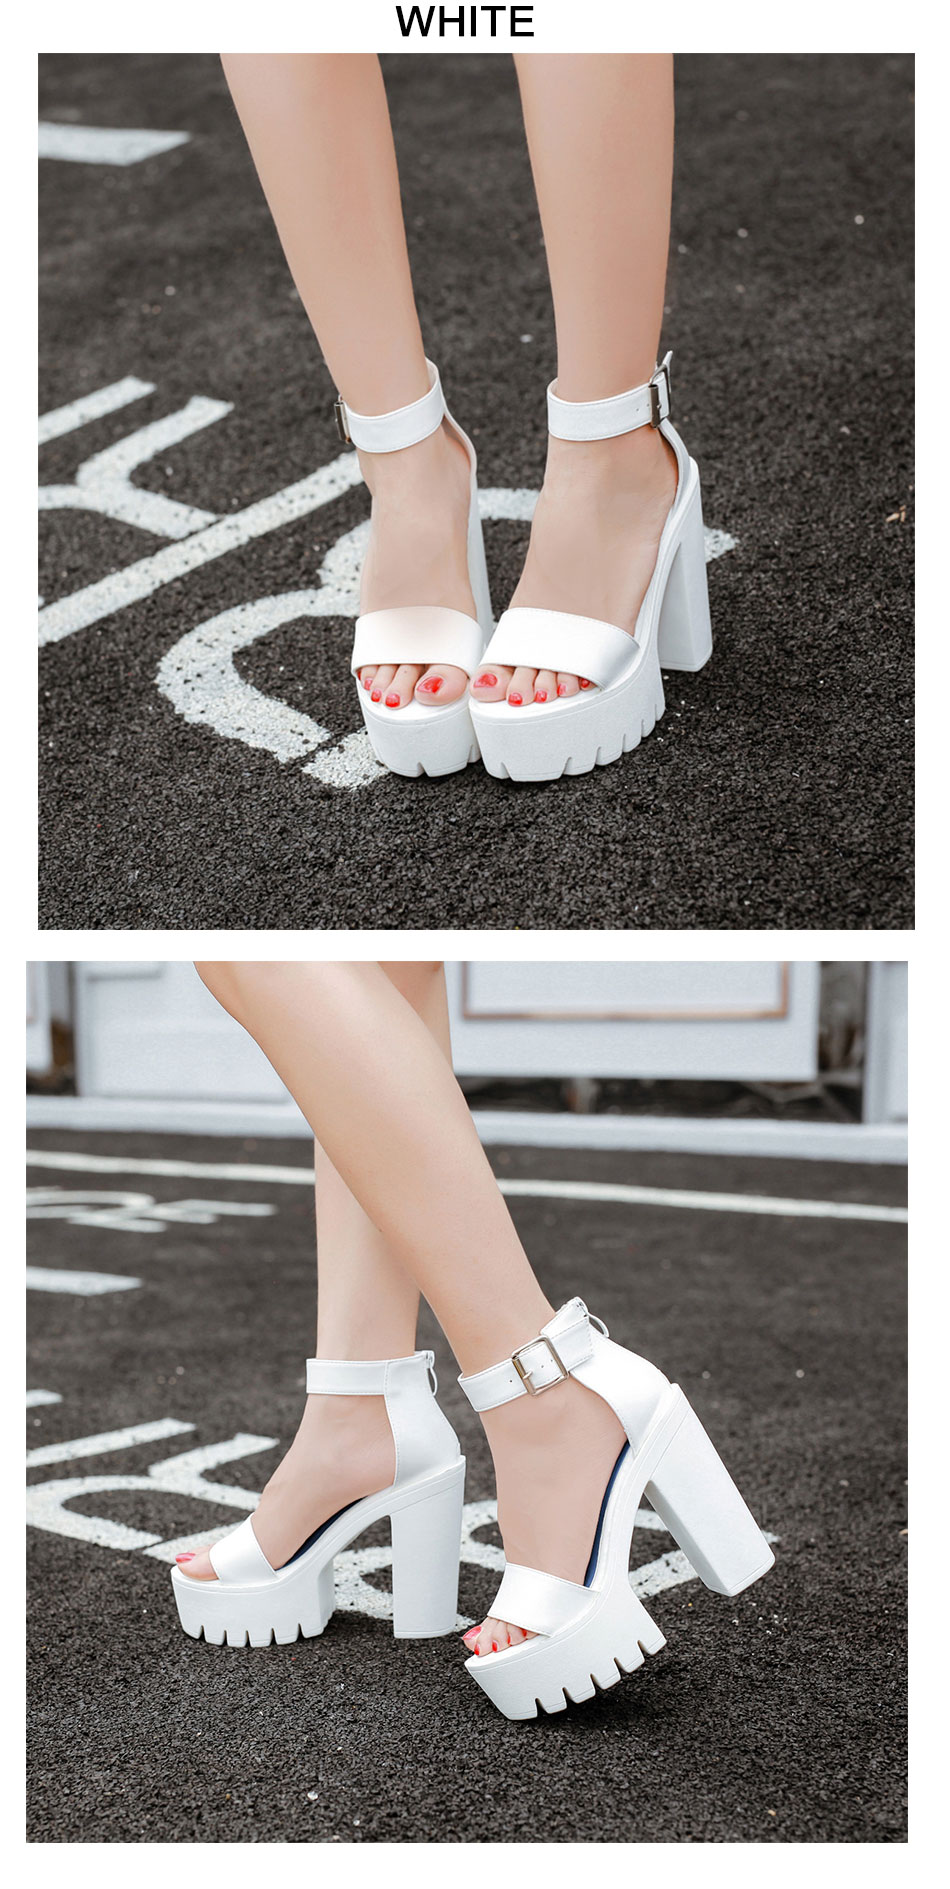 Gdgydh Drop Shipping White Summer Sandal Shoes for Women 2019 New Arrival Thick Heels Sandals Platform Casual Russian Shoes